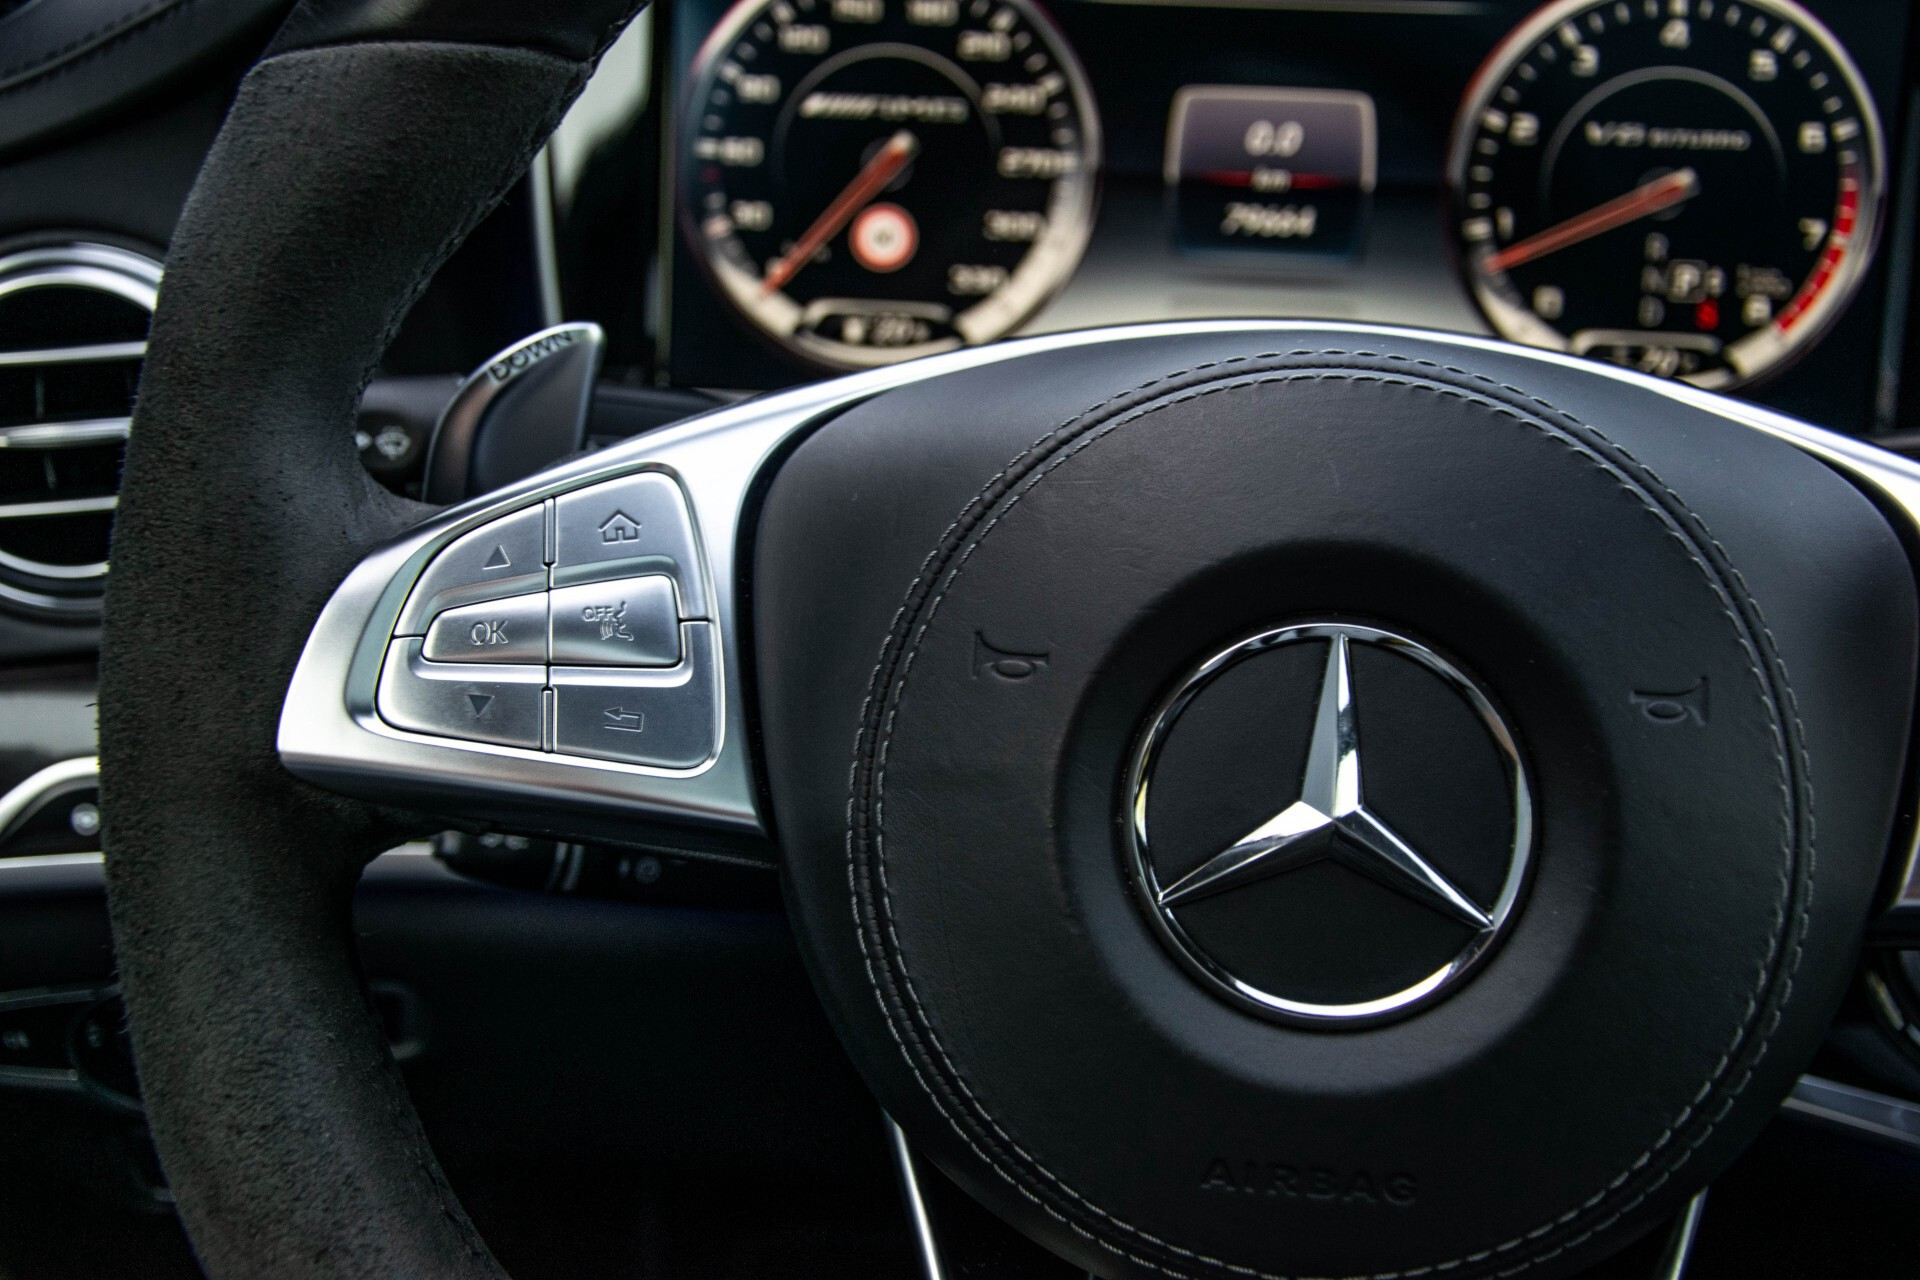 Mercedes-Benz S-Klasse 63 AMG Exclusive/Burmester High-End/Driverspack Aut7 Foto 9